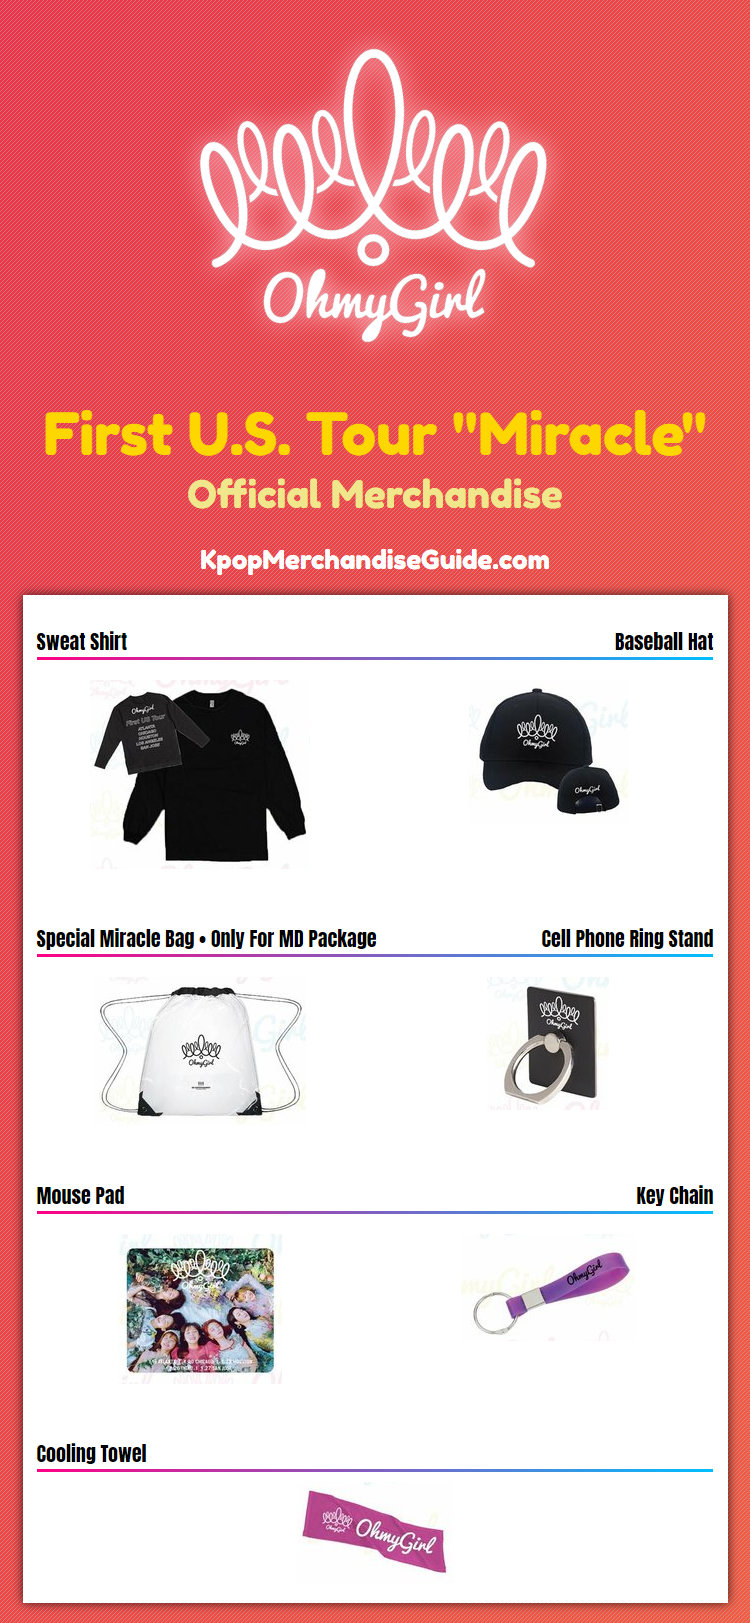 Oh My Girl First U.S. Tour Miracle Merchandise